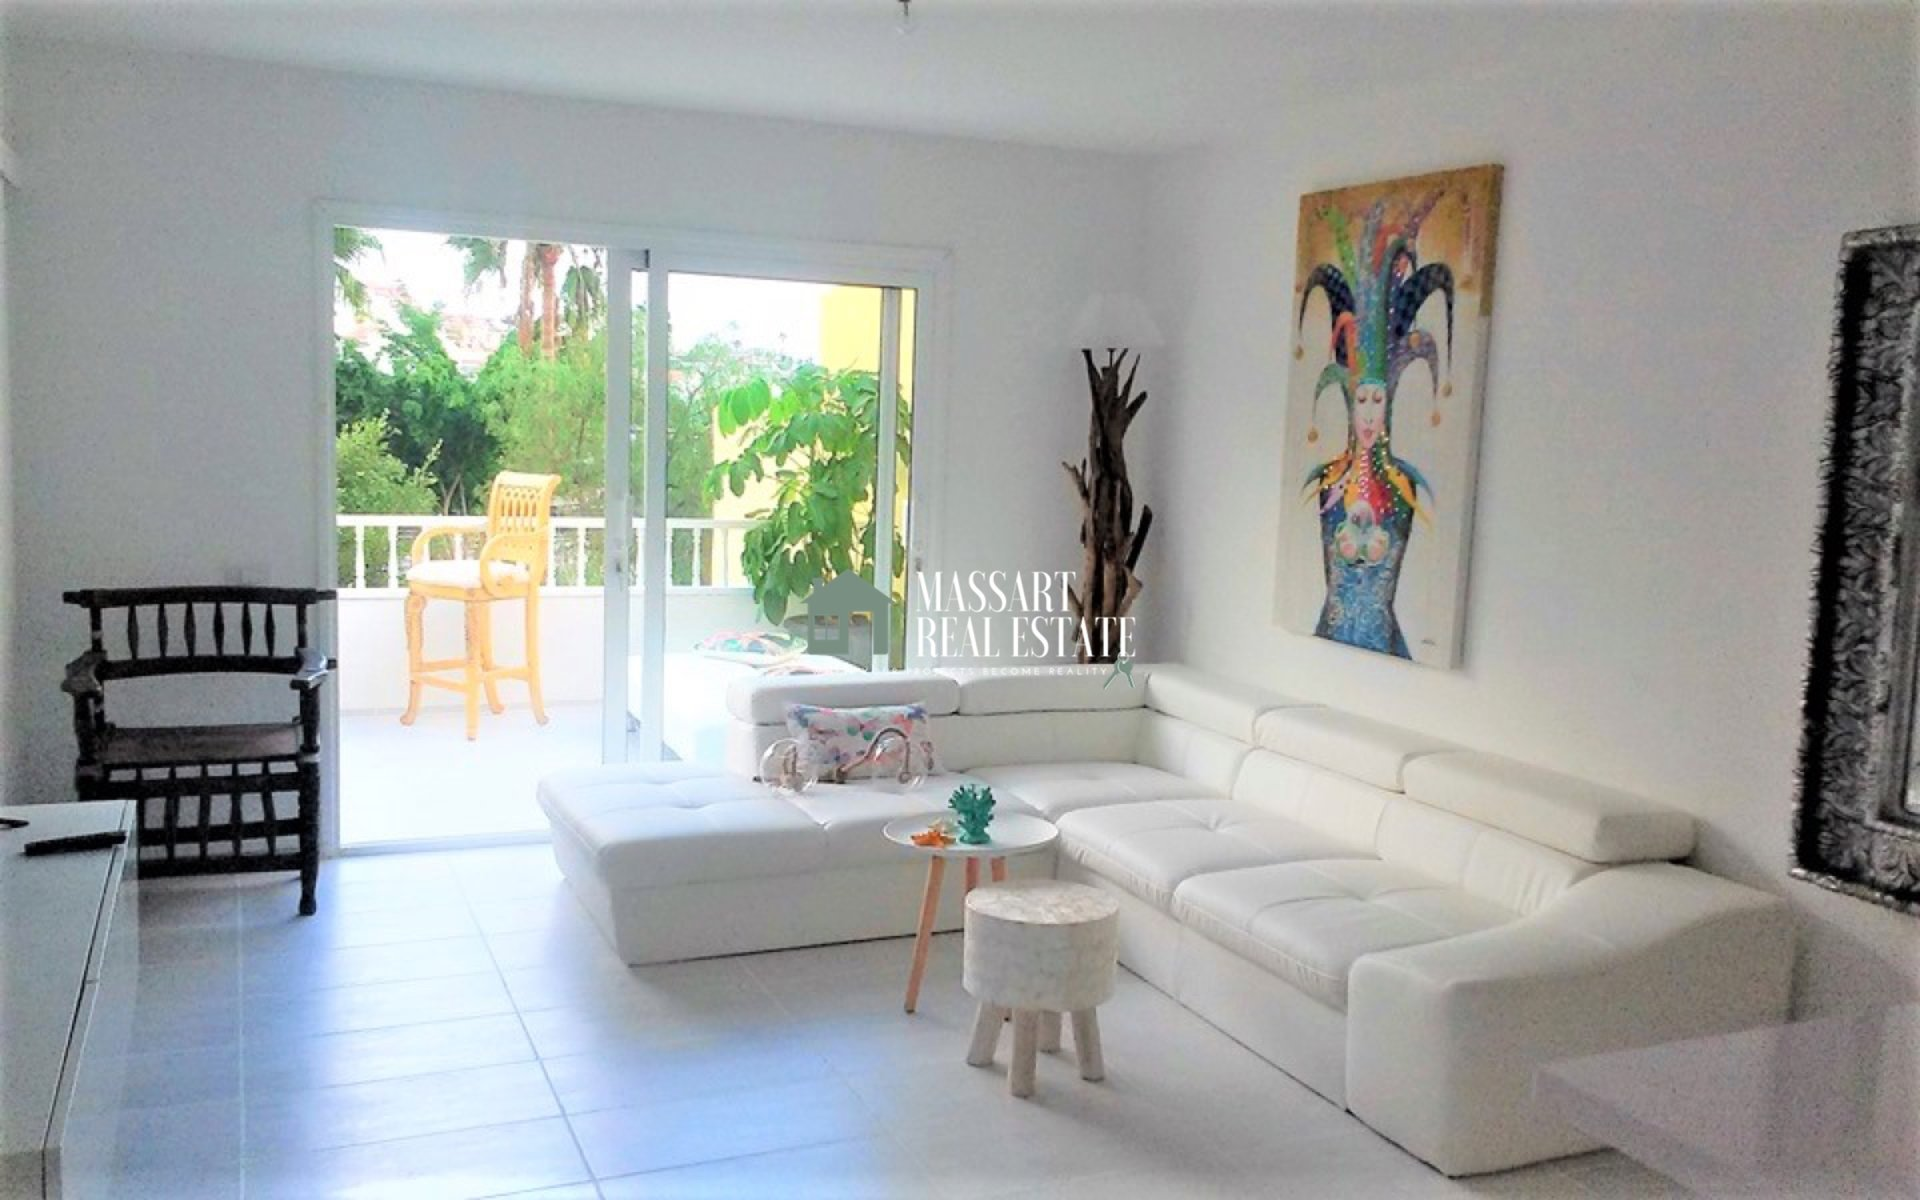 For sale in San Eugenio (Costa Adeje), in the Las Brisas residential complex, 68 m2 apartment fully furnished and recently renovated.